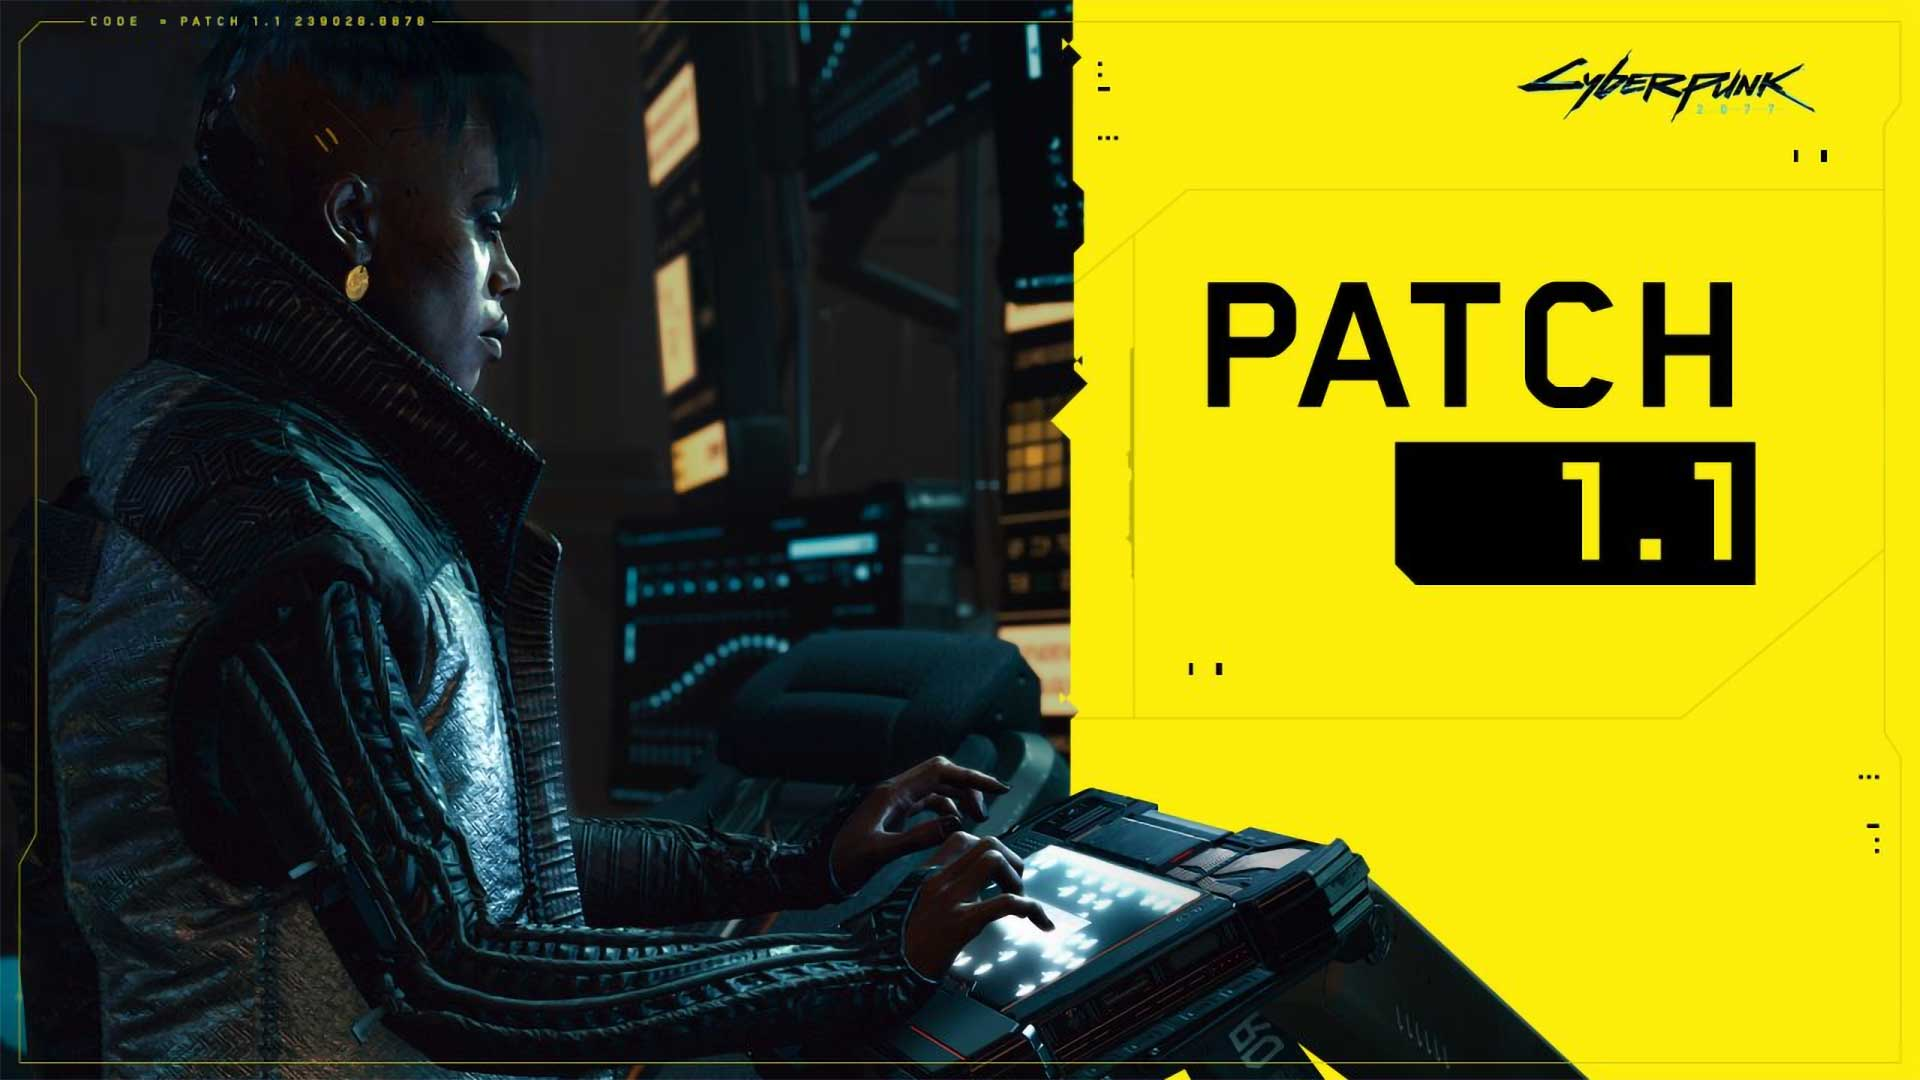 cyberpunk 2077 patch 1 1